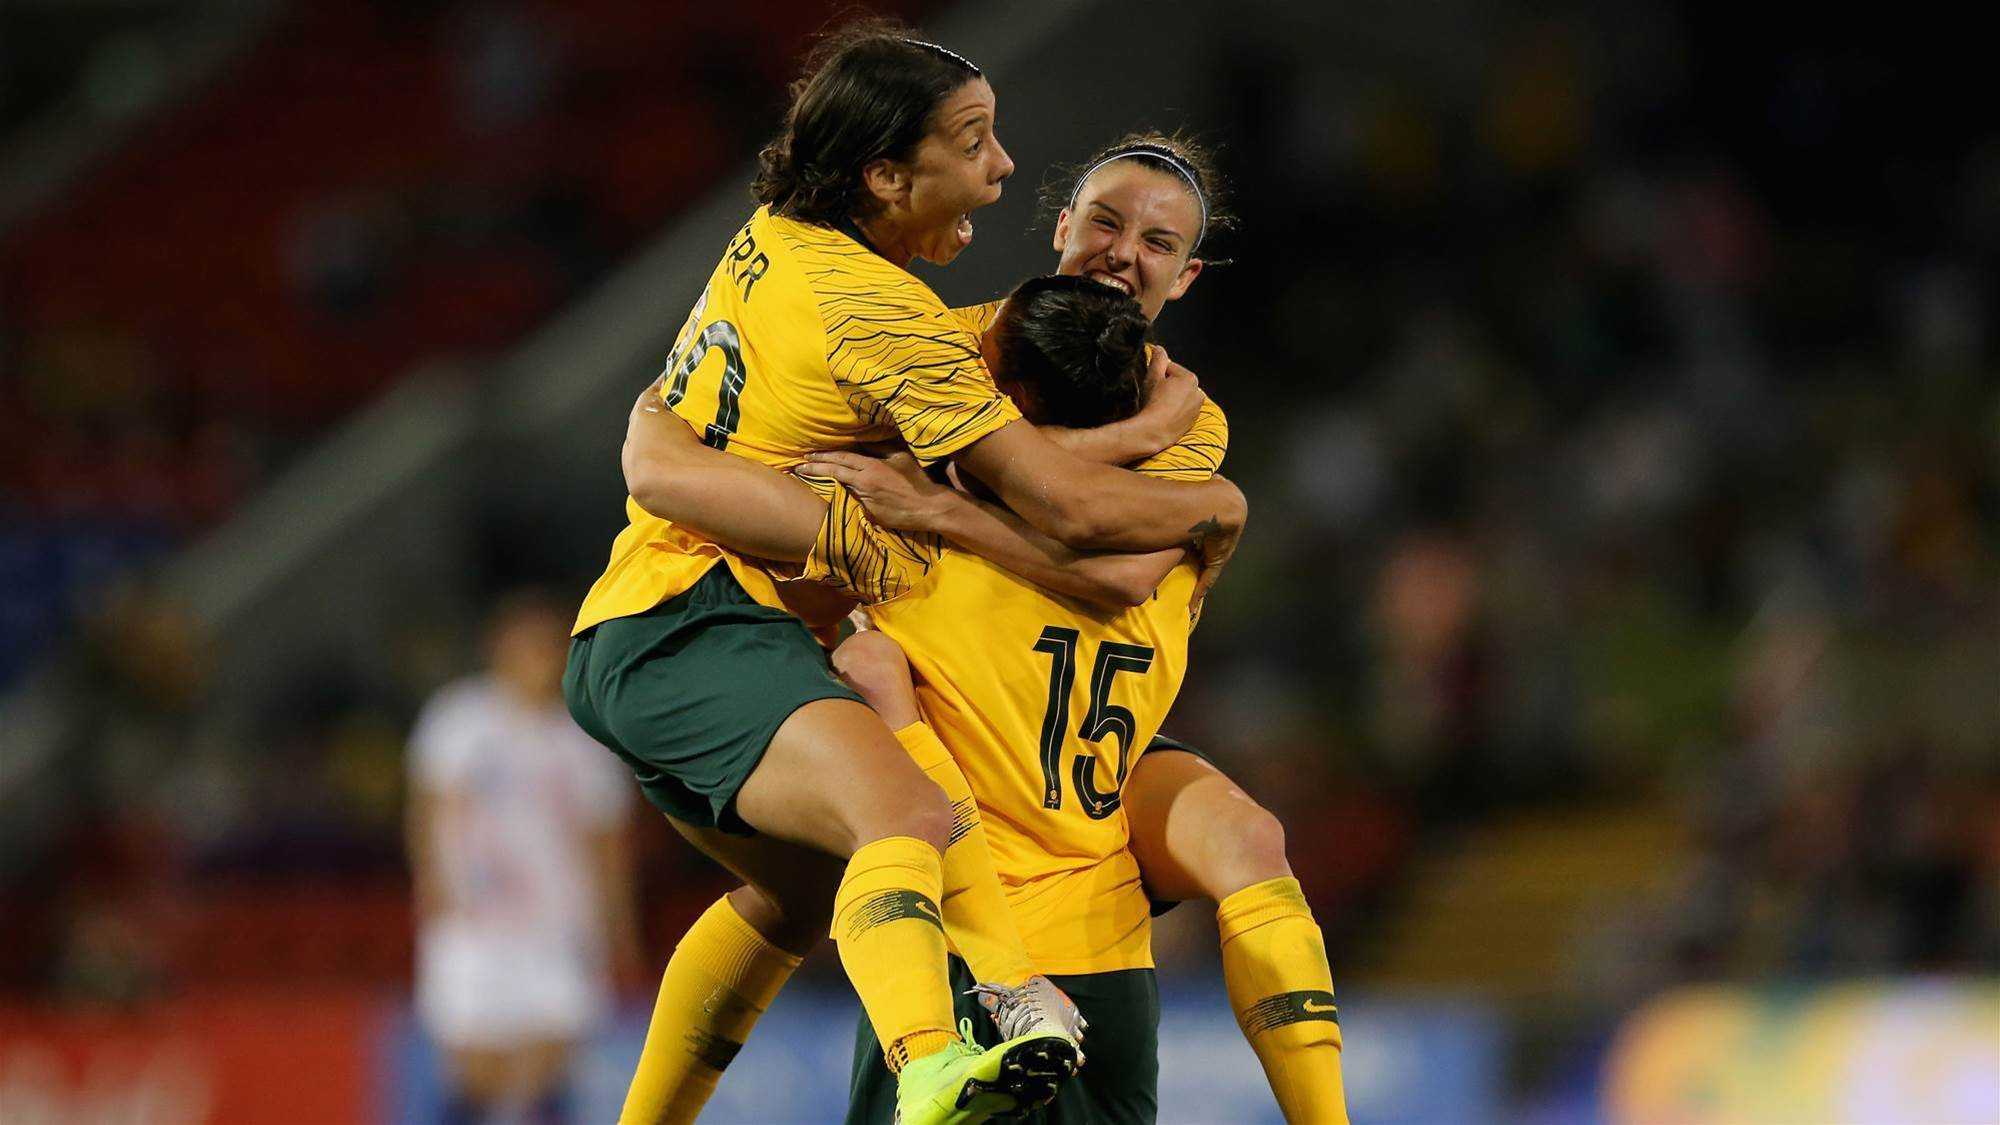 Matildas v Chile 2.0: 3 things we learnt